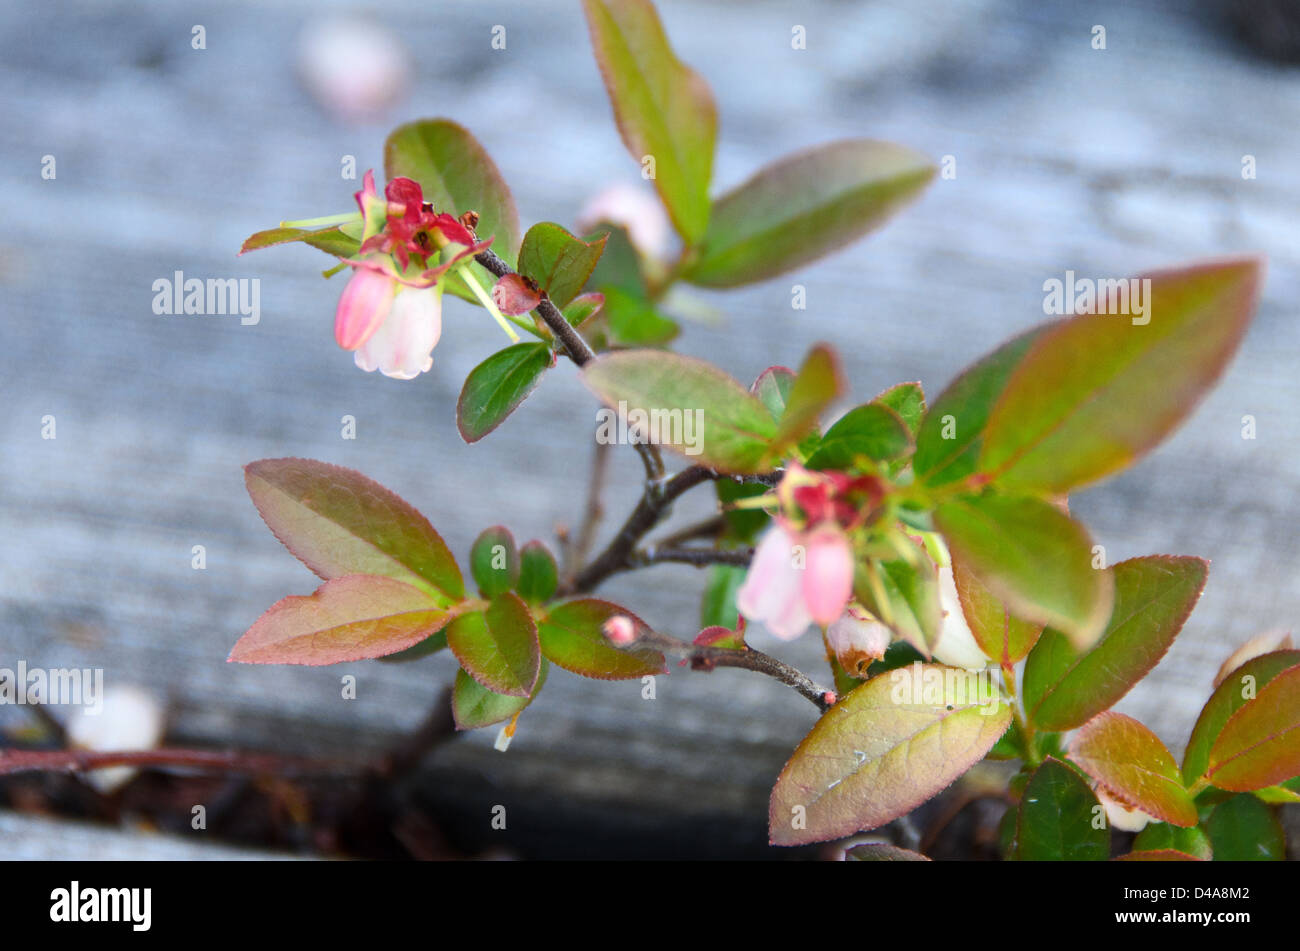 blueberry plant flowering between planks of boardwalk - Stock Image